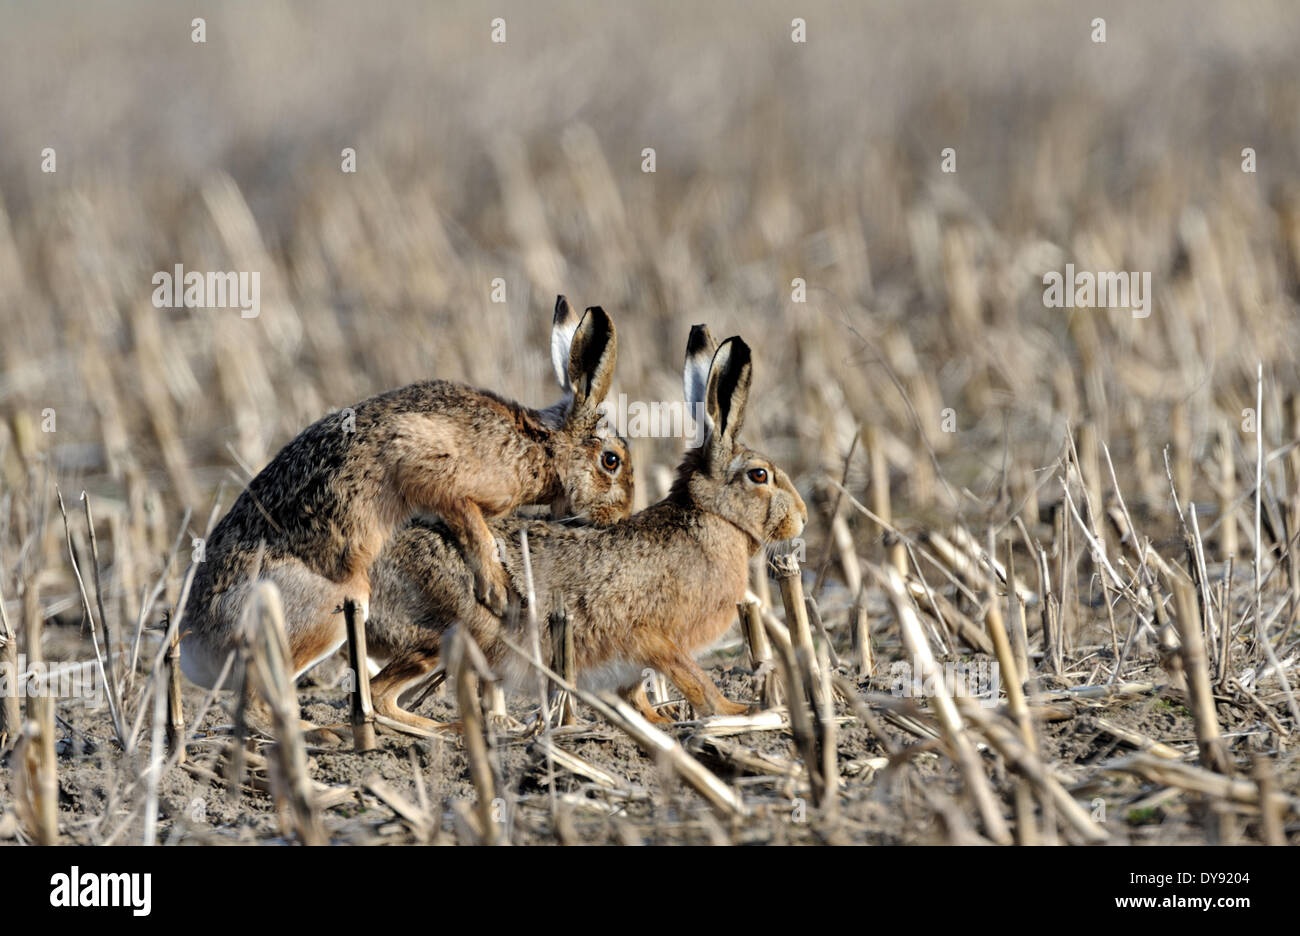 Hare Rabbit Lepus europaeus Pallas brown hare bunny rodent nature wild animal game stubble field mating animals - Stock Image